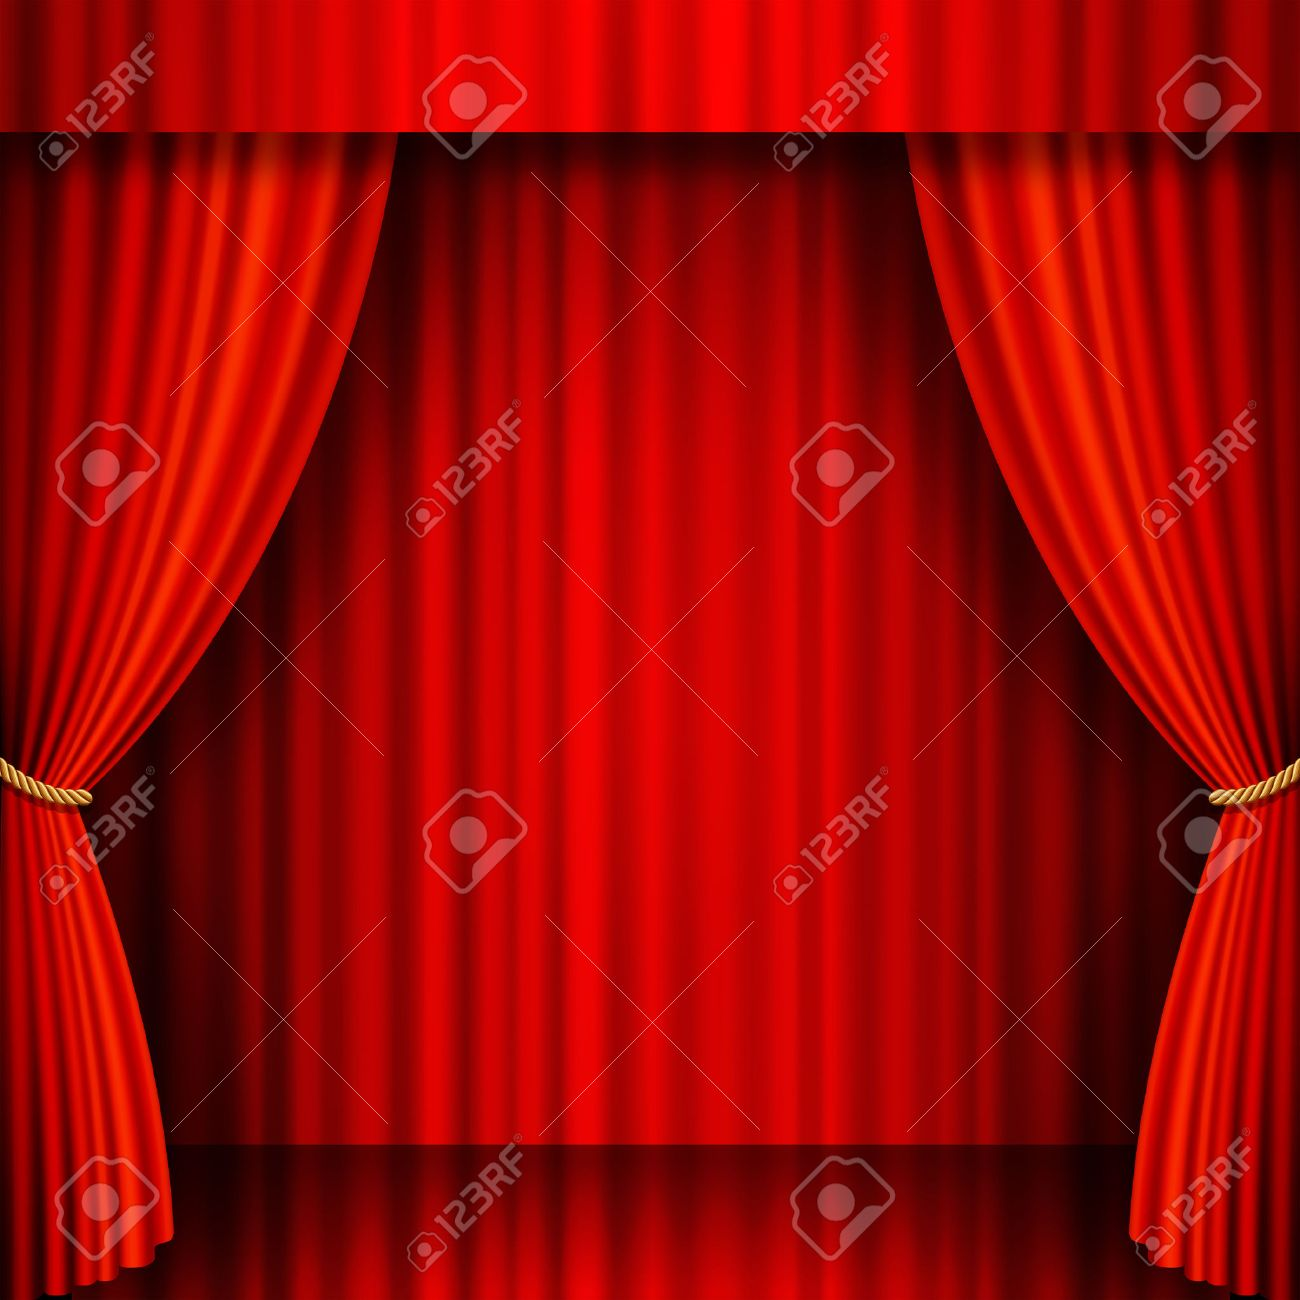 room curtains vector curtain velvet red background floor with stock horisontal retro zigzag